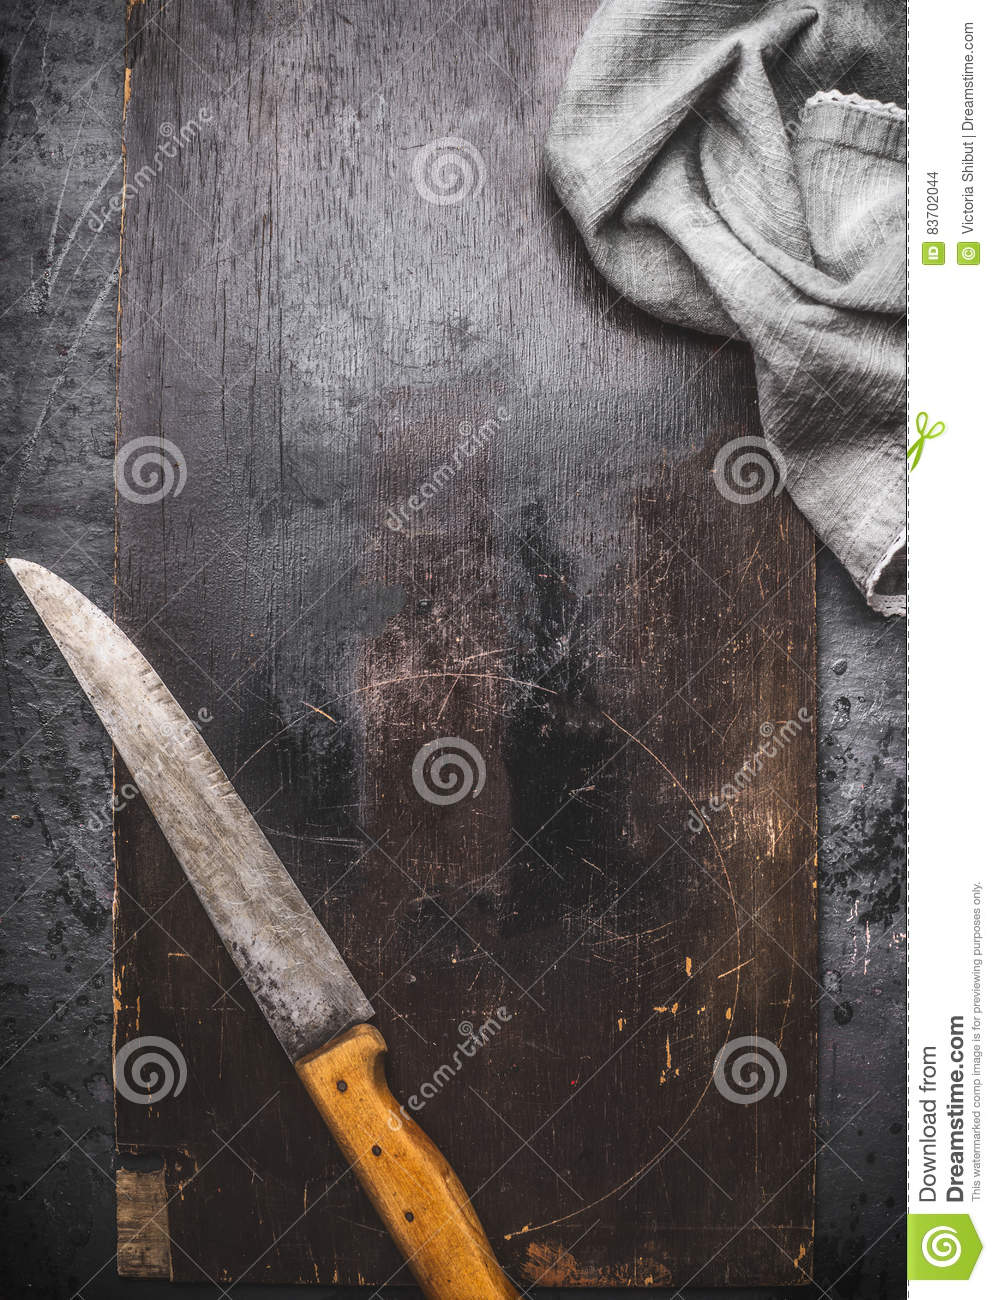 Dark Rustic Food Background With Kitchen Knife And Napkin Stock Photo